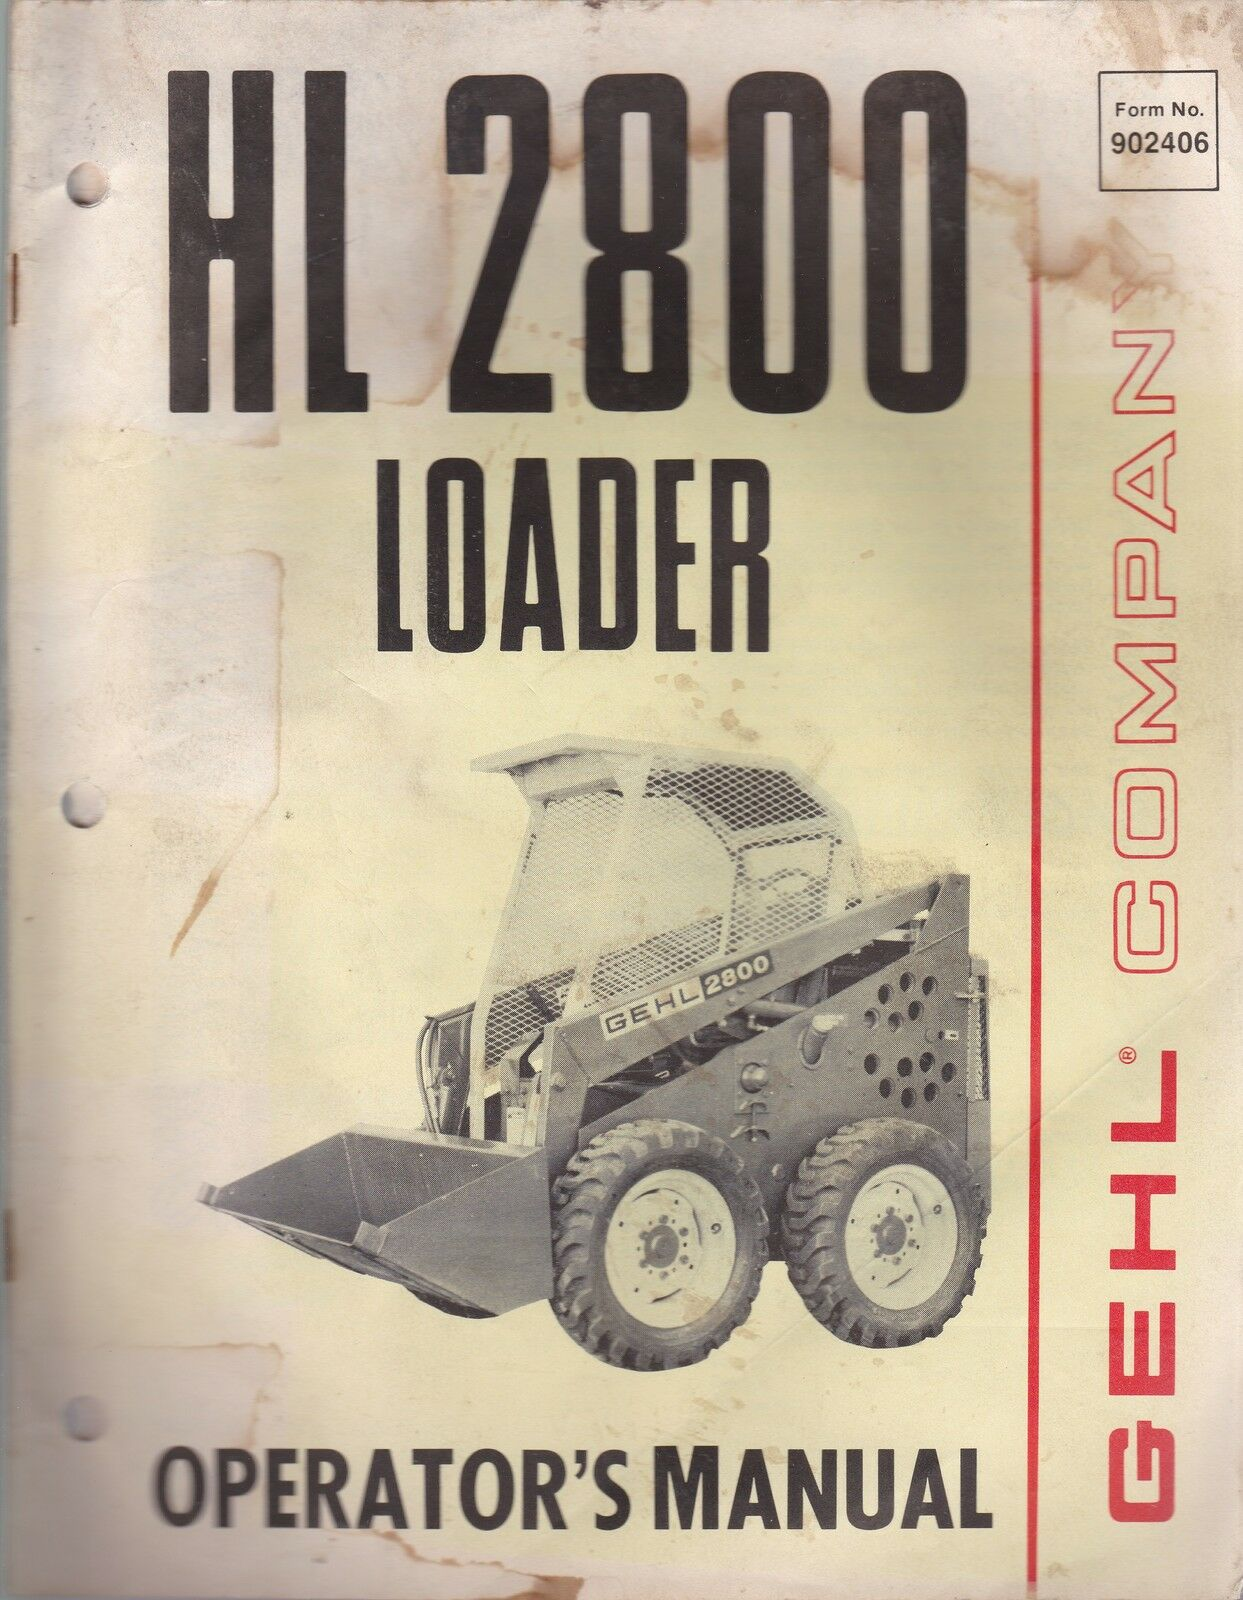 gehl hl 2800 skid steer loader operator s manual 30 00 picclick rh picclick com gehl skid steer 4835 sxt service manual Case Skid Steer Operators Manual